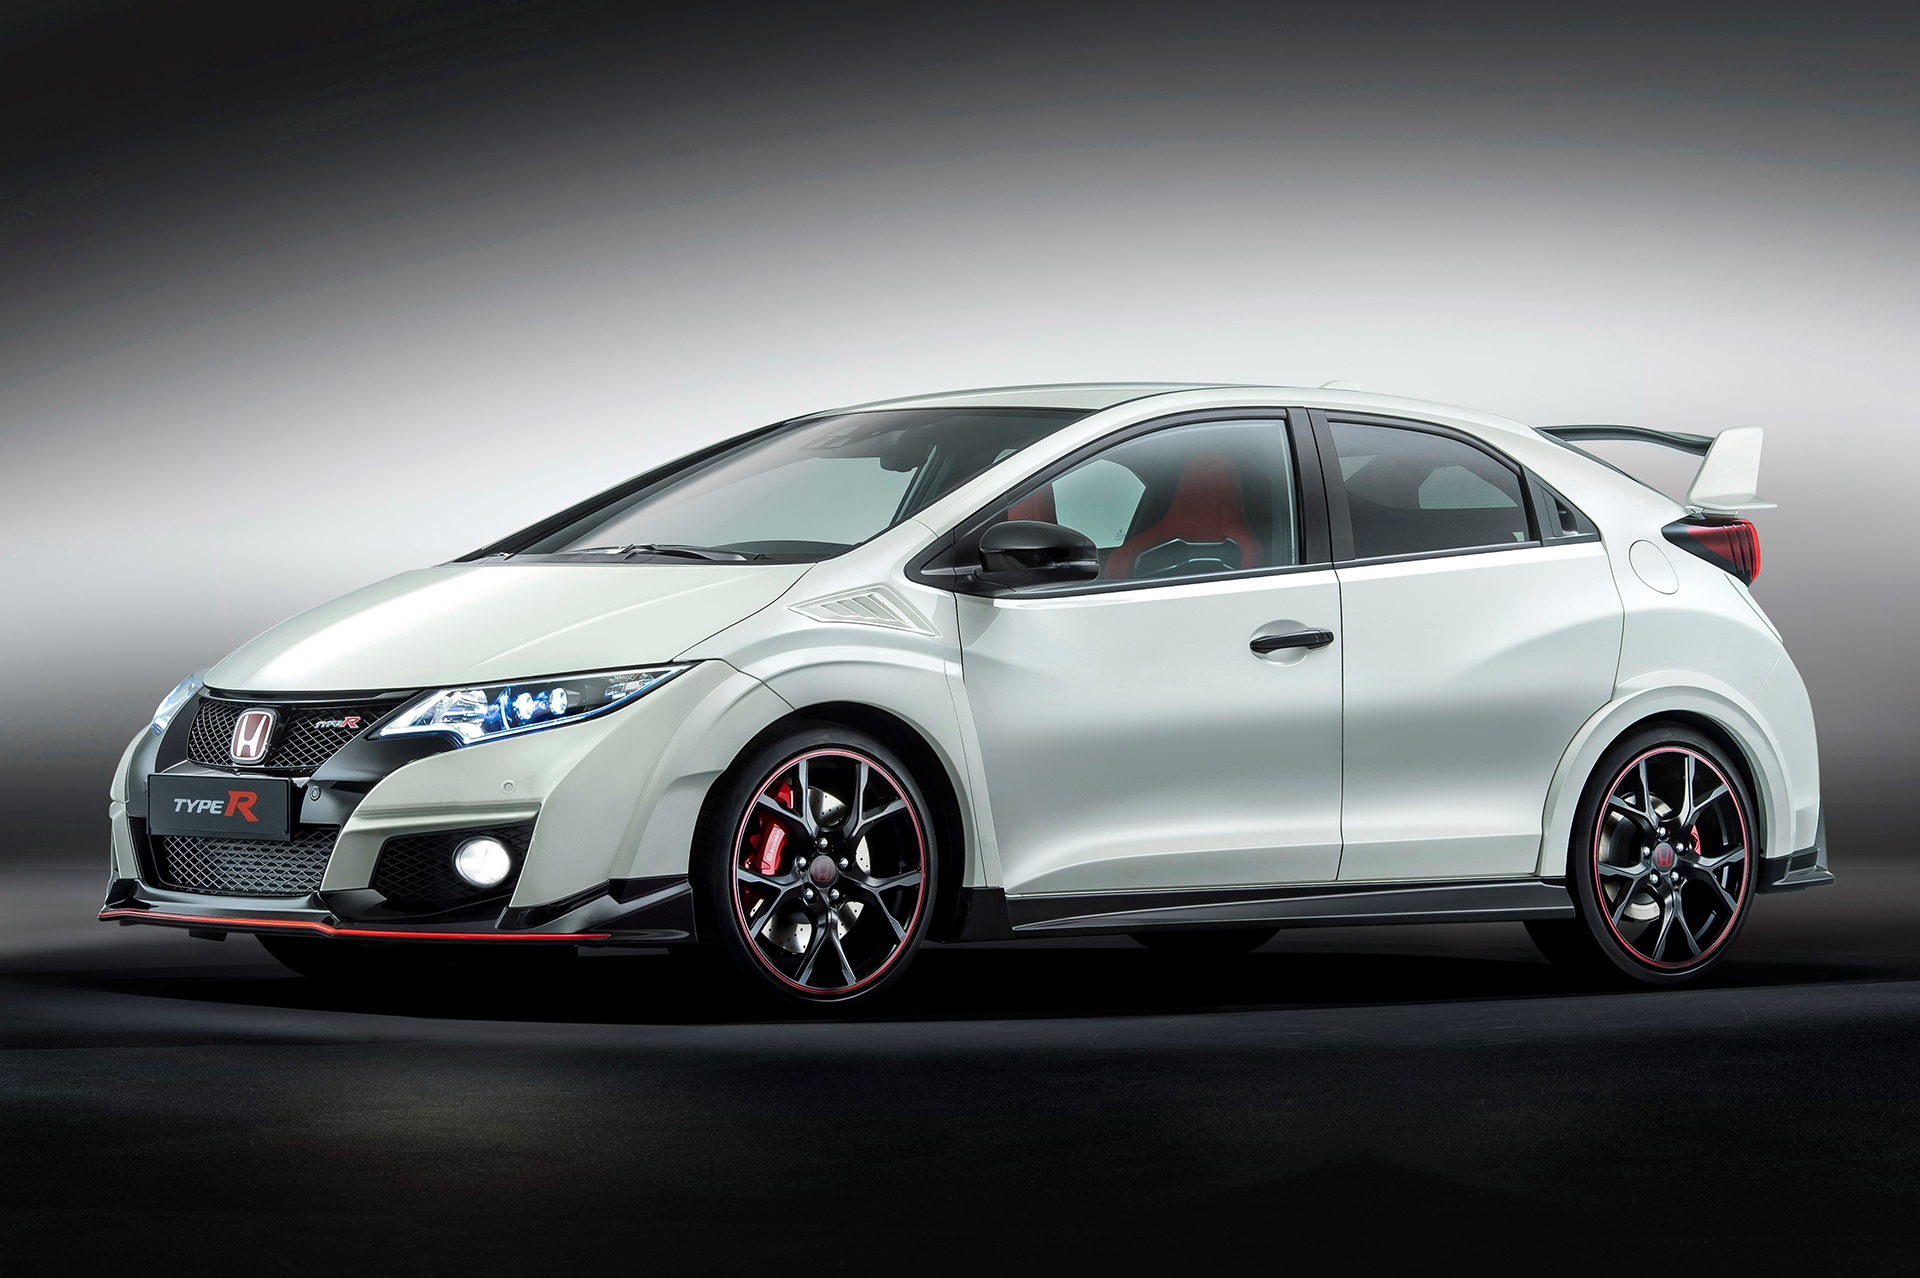 Honda Civic Type R - 2015 - front side-face / profil avant